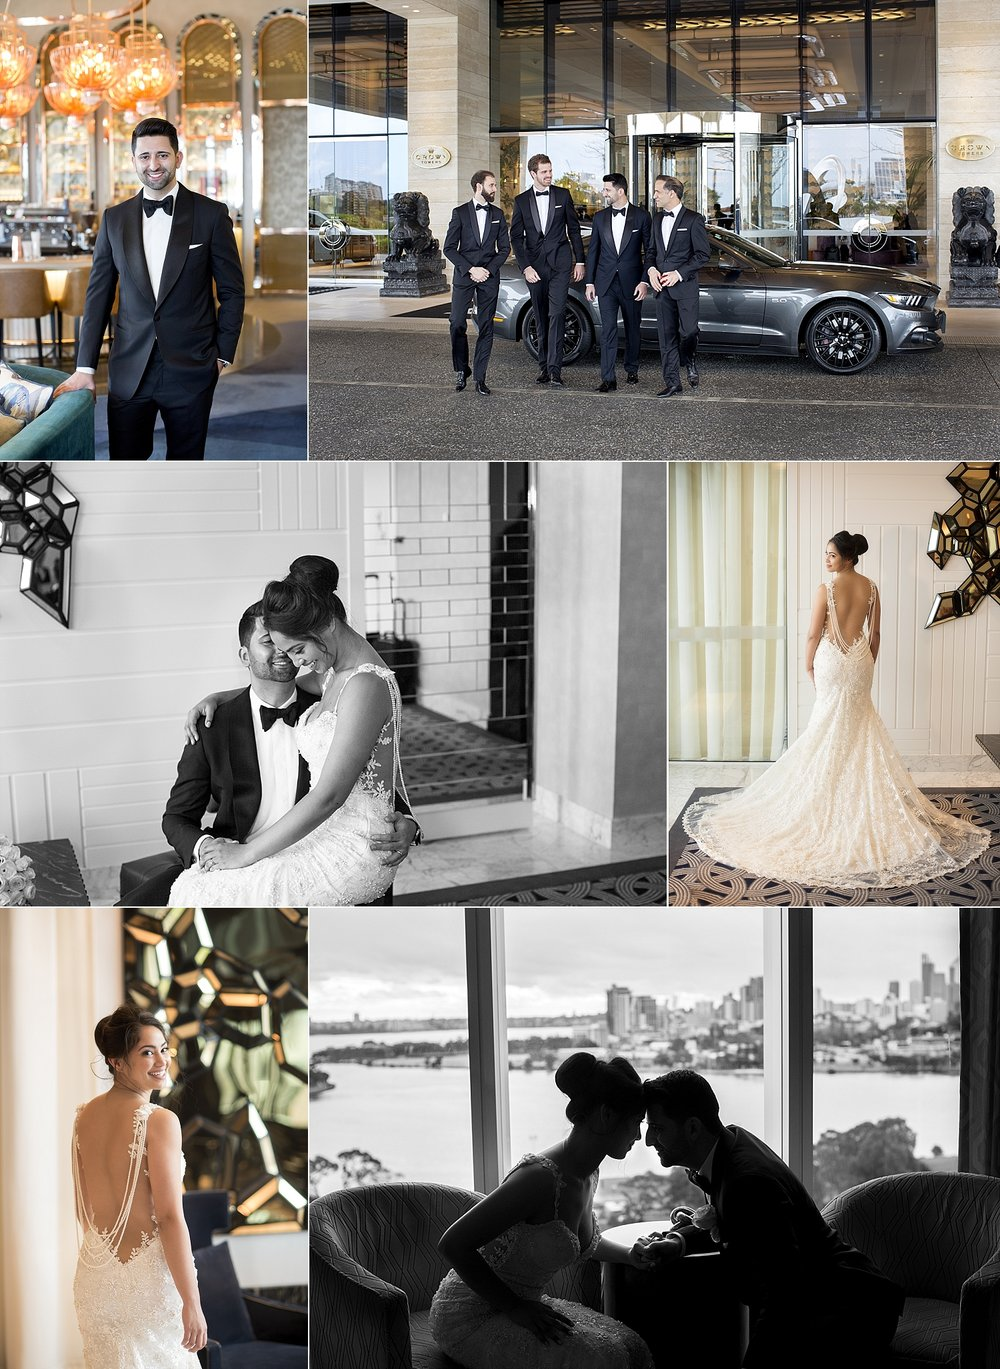 Crown Towers wedding photos Perth.jpg